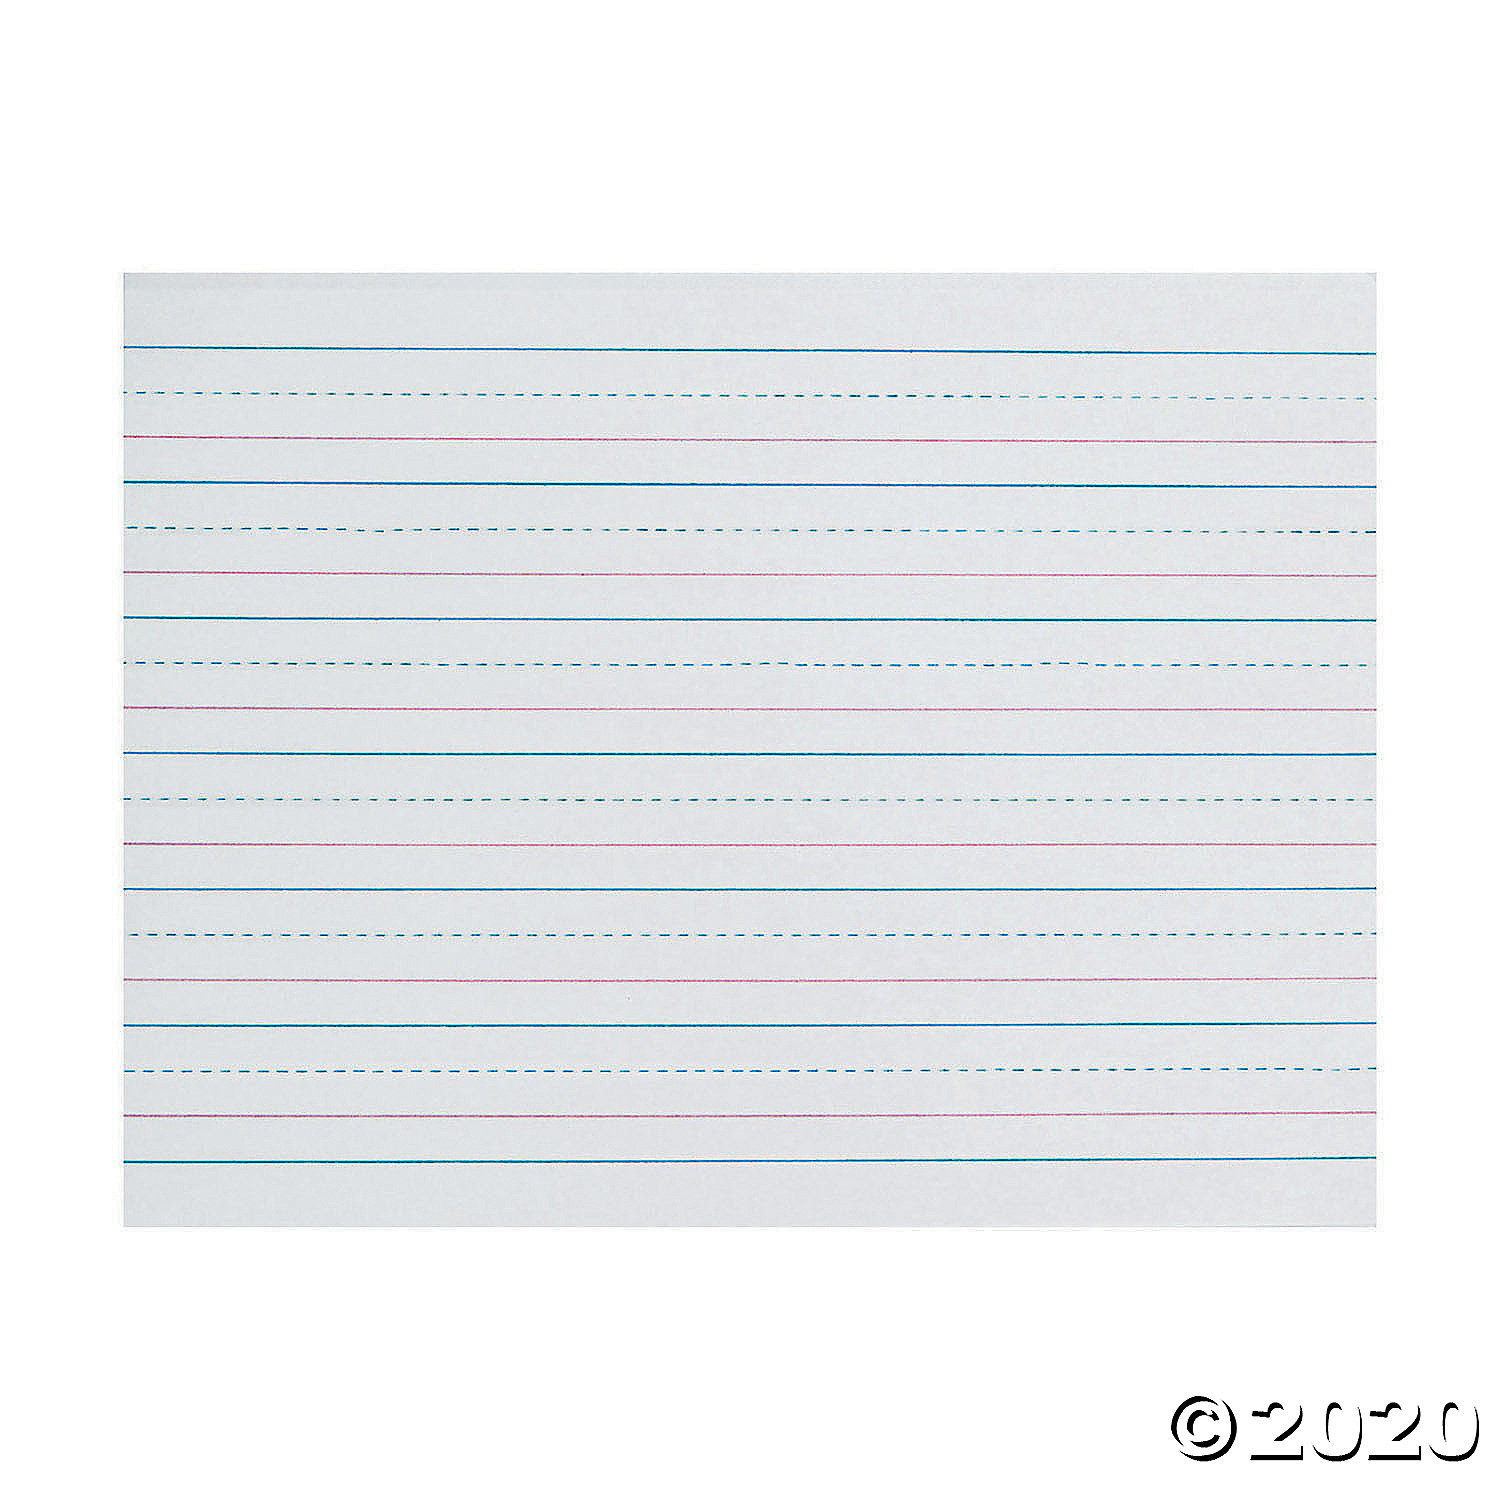 Zane Bloser Handwriting Worksheets Zaner Bloser™ Sulphite Handwriting Paper Dotted Midline Grade K 3 4 X 3 8 X 3 8 Ruled Long 10 1 2 X 8 500 Sheets Per Pack 2 Packs